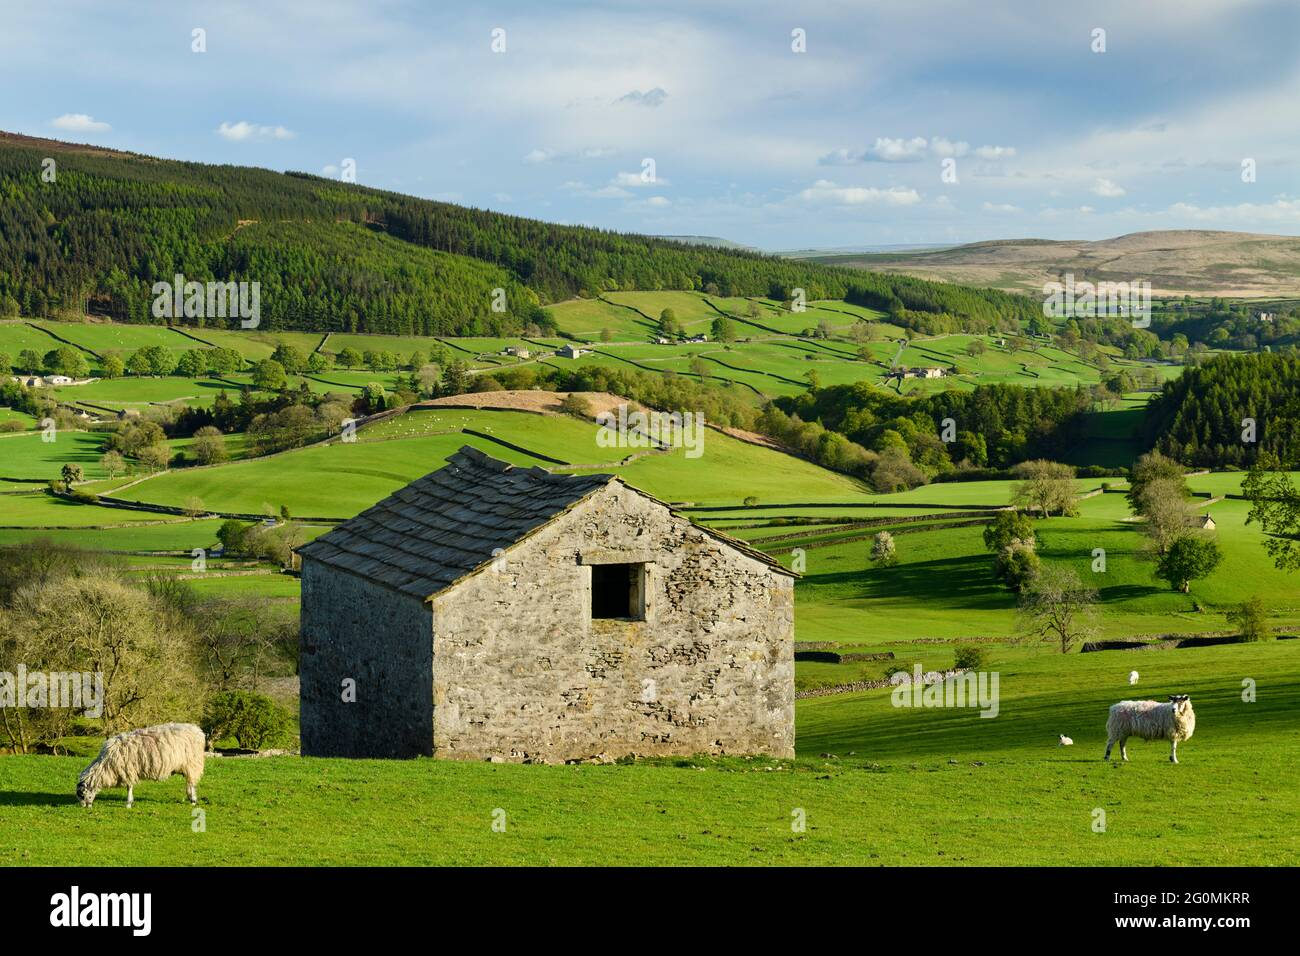 Scenic Wharfedale countryside (valley, hillsides, isolated rustic field barn, drystone walls, green farmland pastures) - Yorkshire Dales, England, UK. Stock Photo